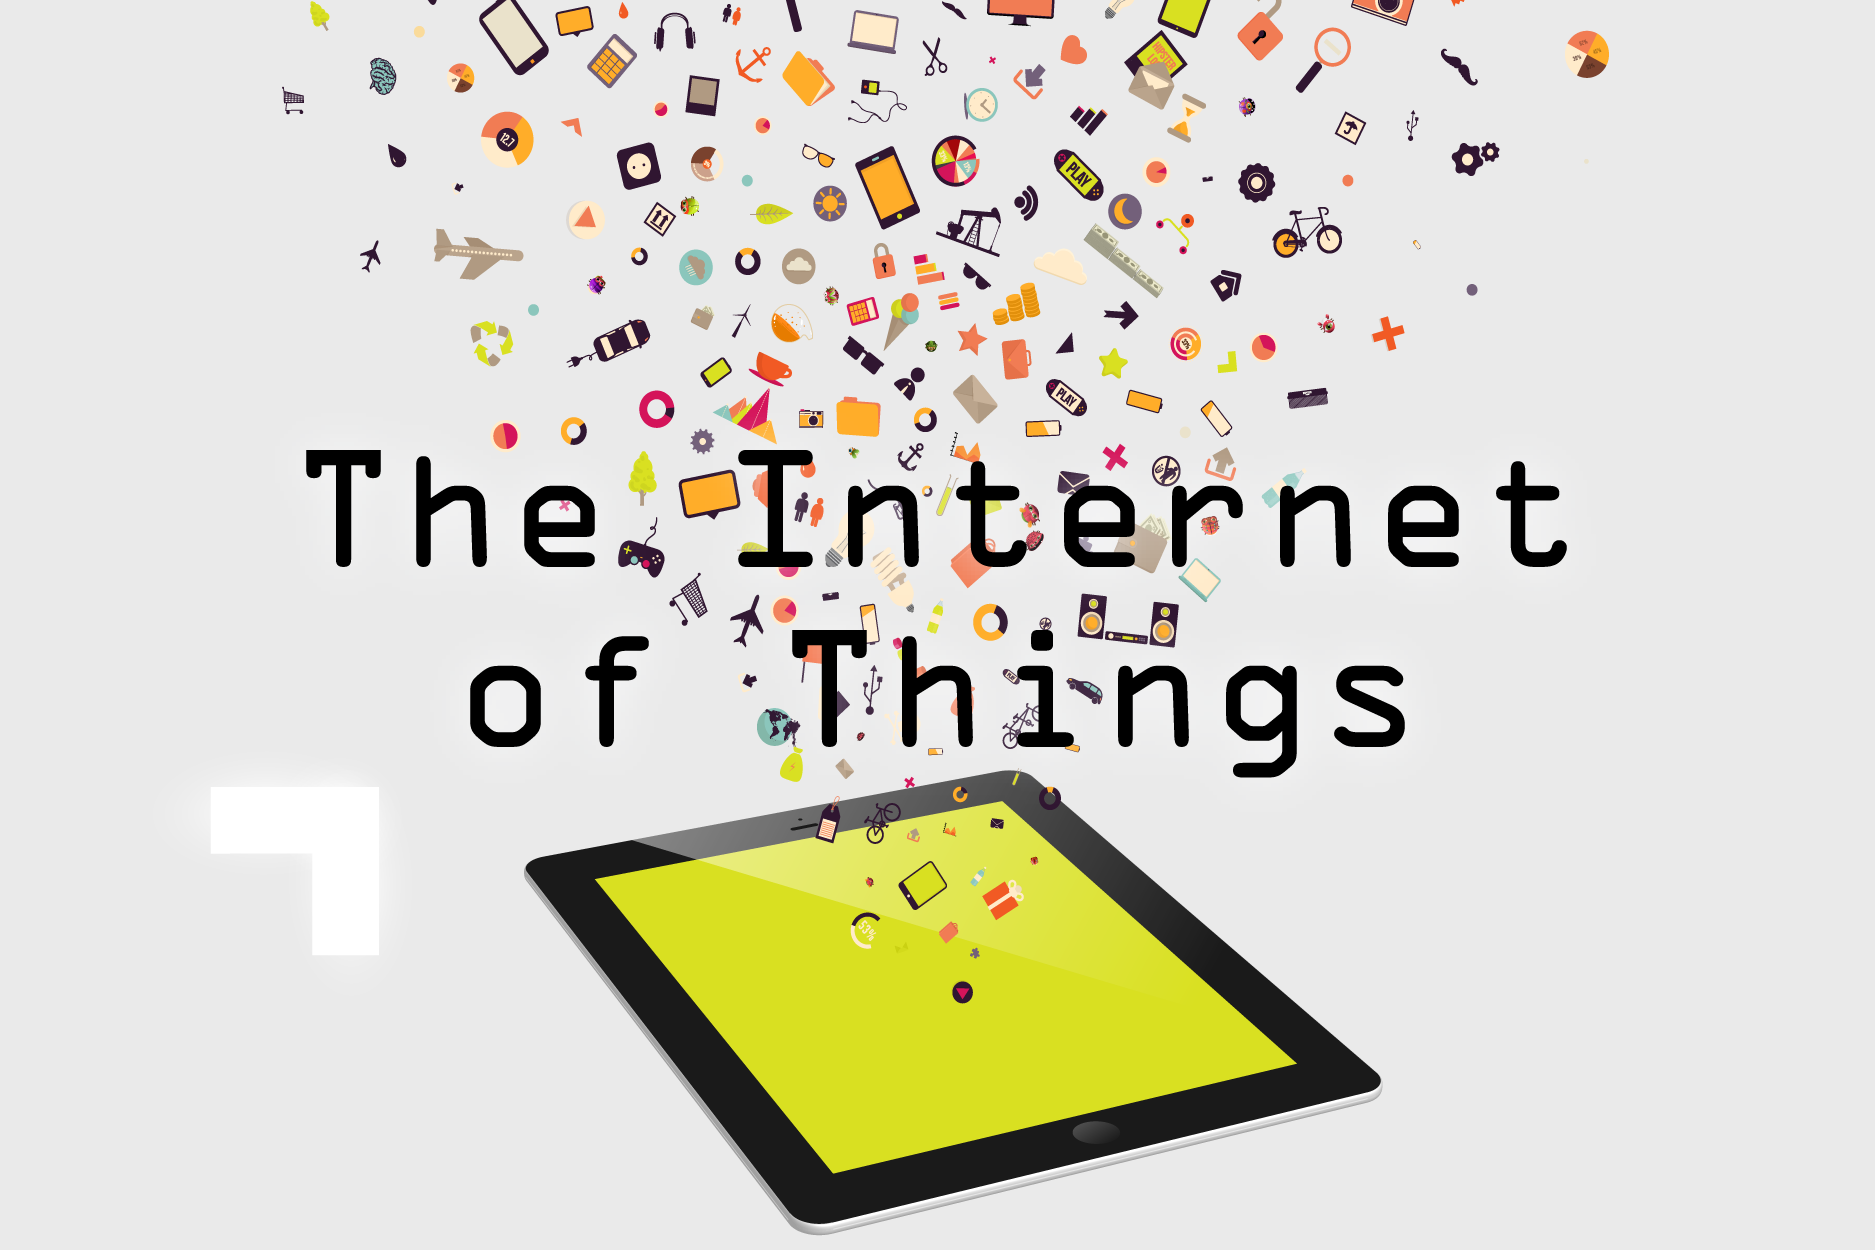 FBI Public Service Announcement Warning of IoT Apps